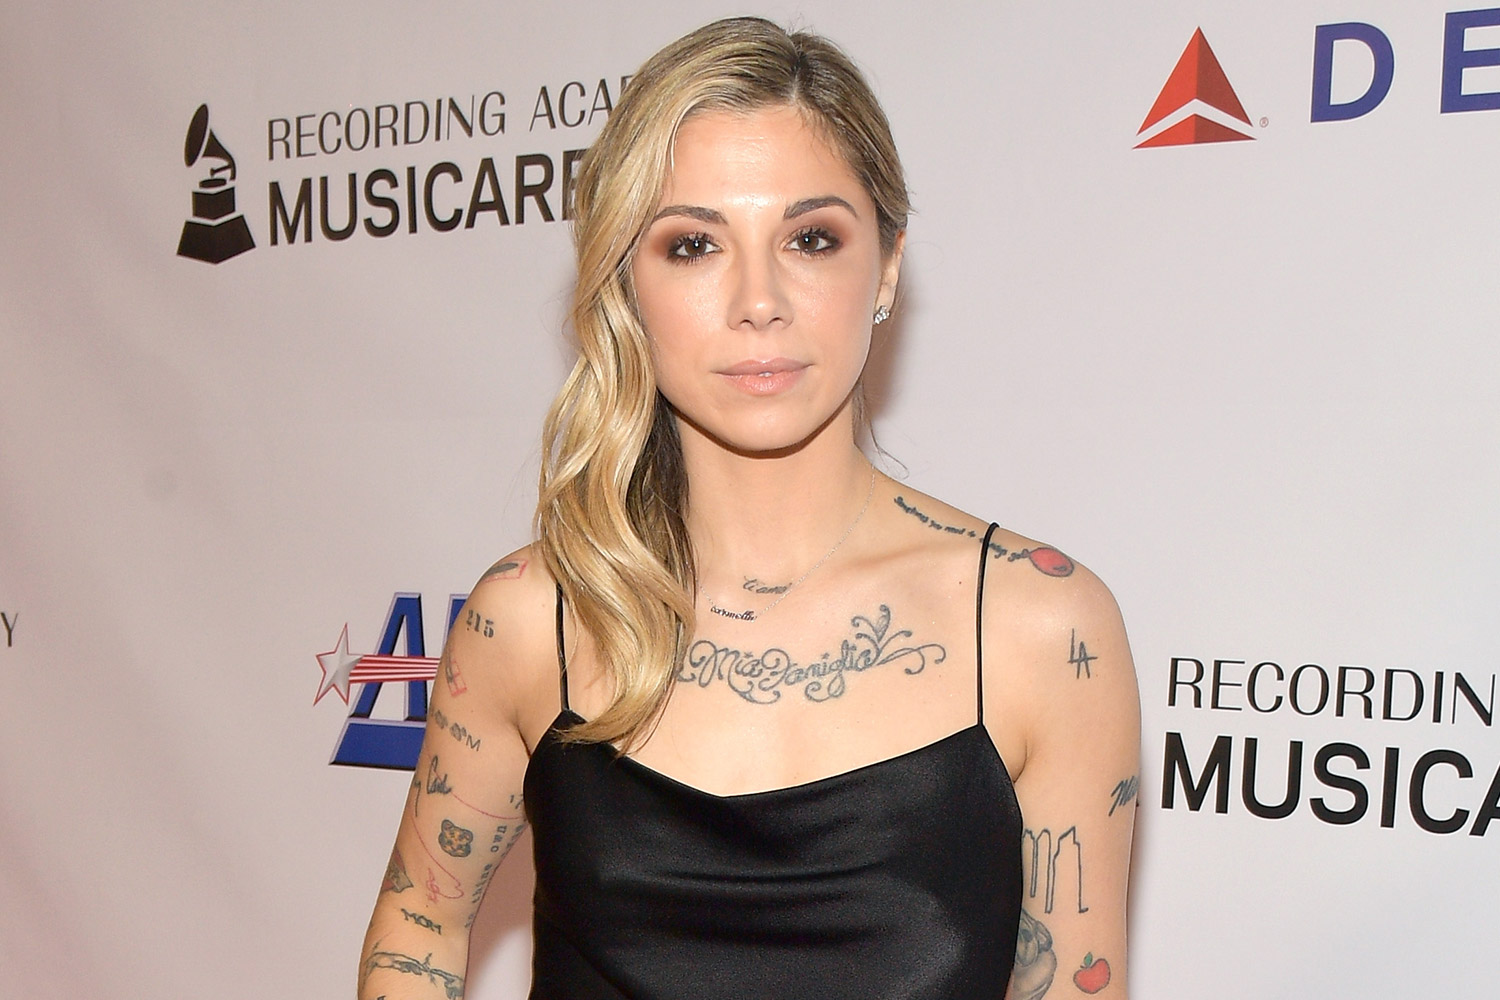 LOS ANGELES, CA - FEBRUARY 08:  Christina Perri attends MusiCares Person of the Year honoring Dolly Parton at Los Angeles Convention Center on February 8, 2019 in Los Angeles, California.  (Photo by Matt Winkelmeyer/Getty Images for The Recording Academy)